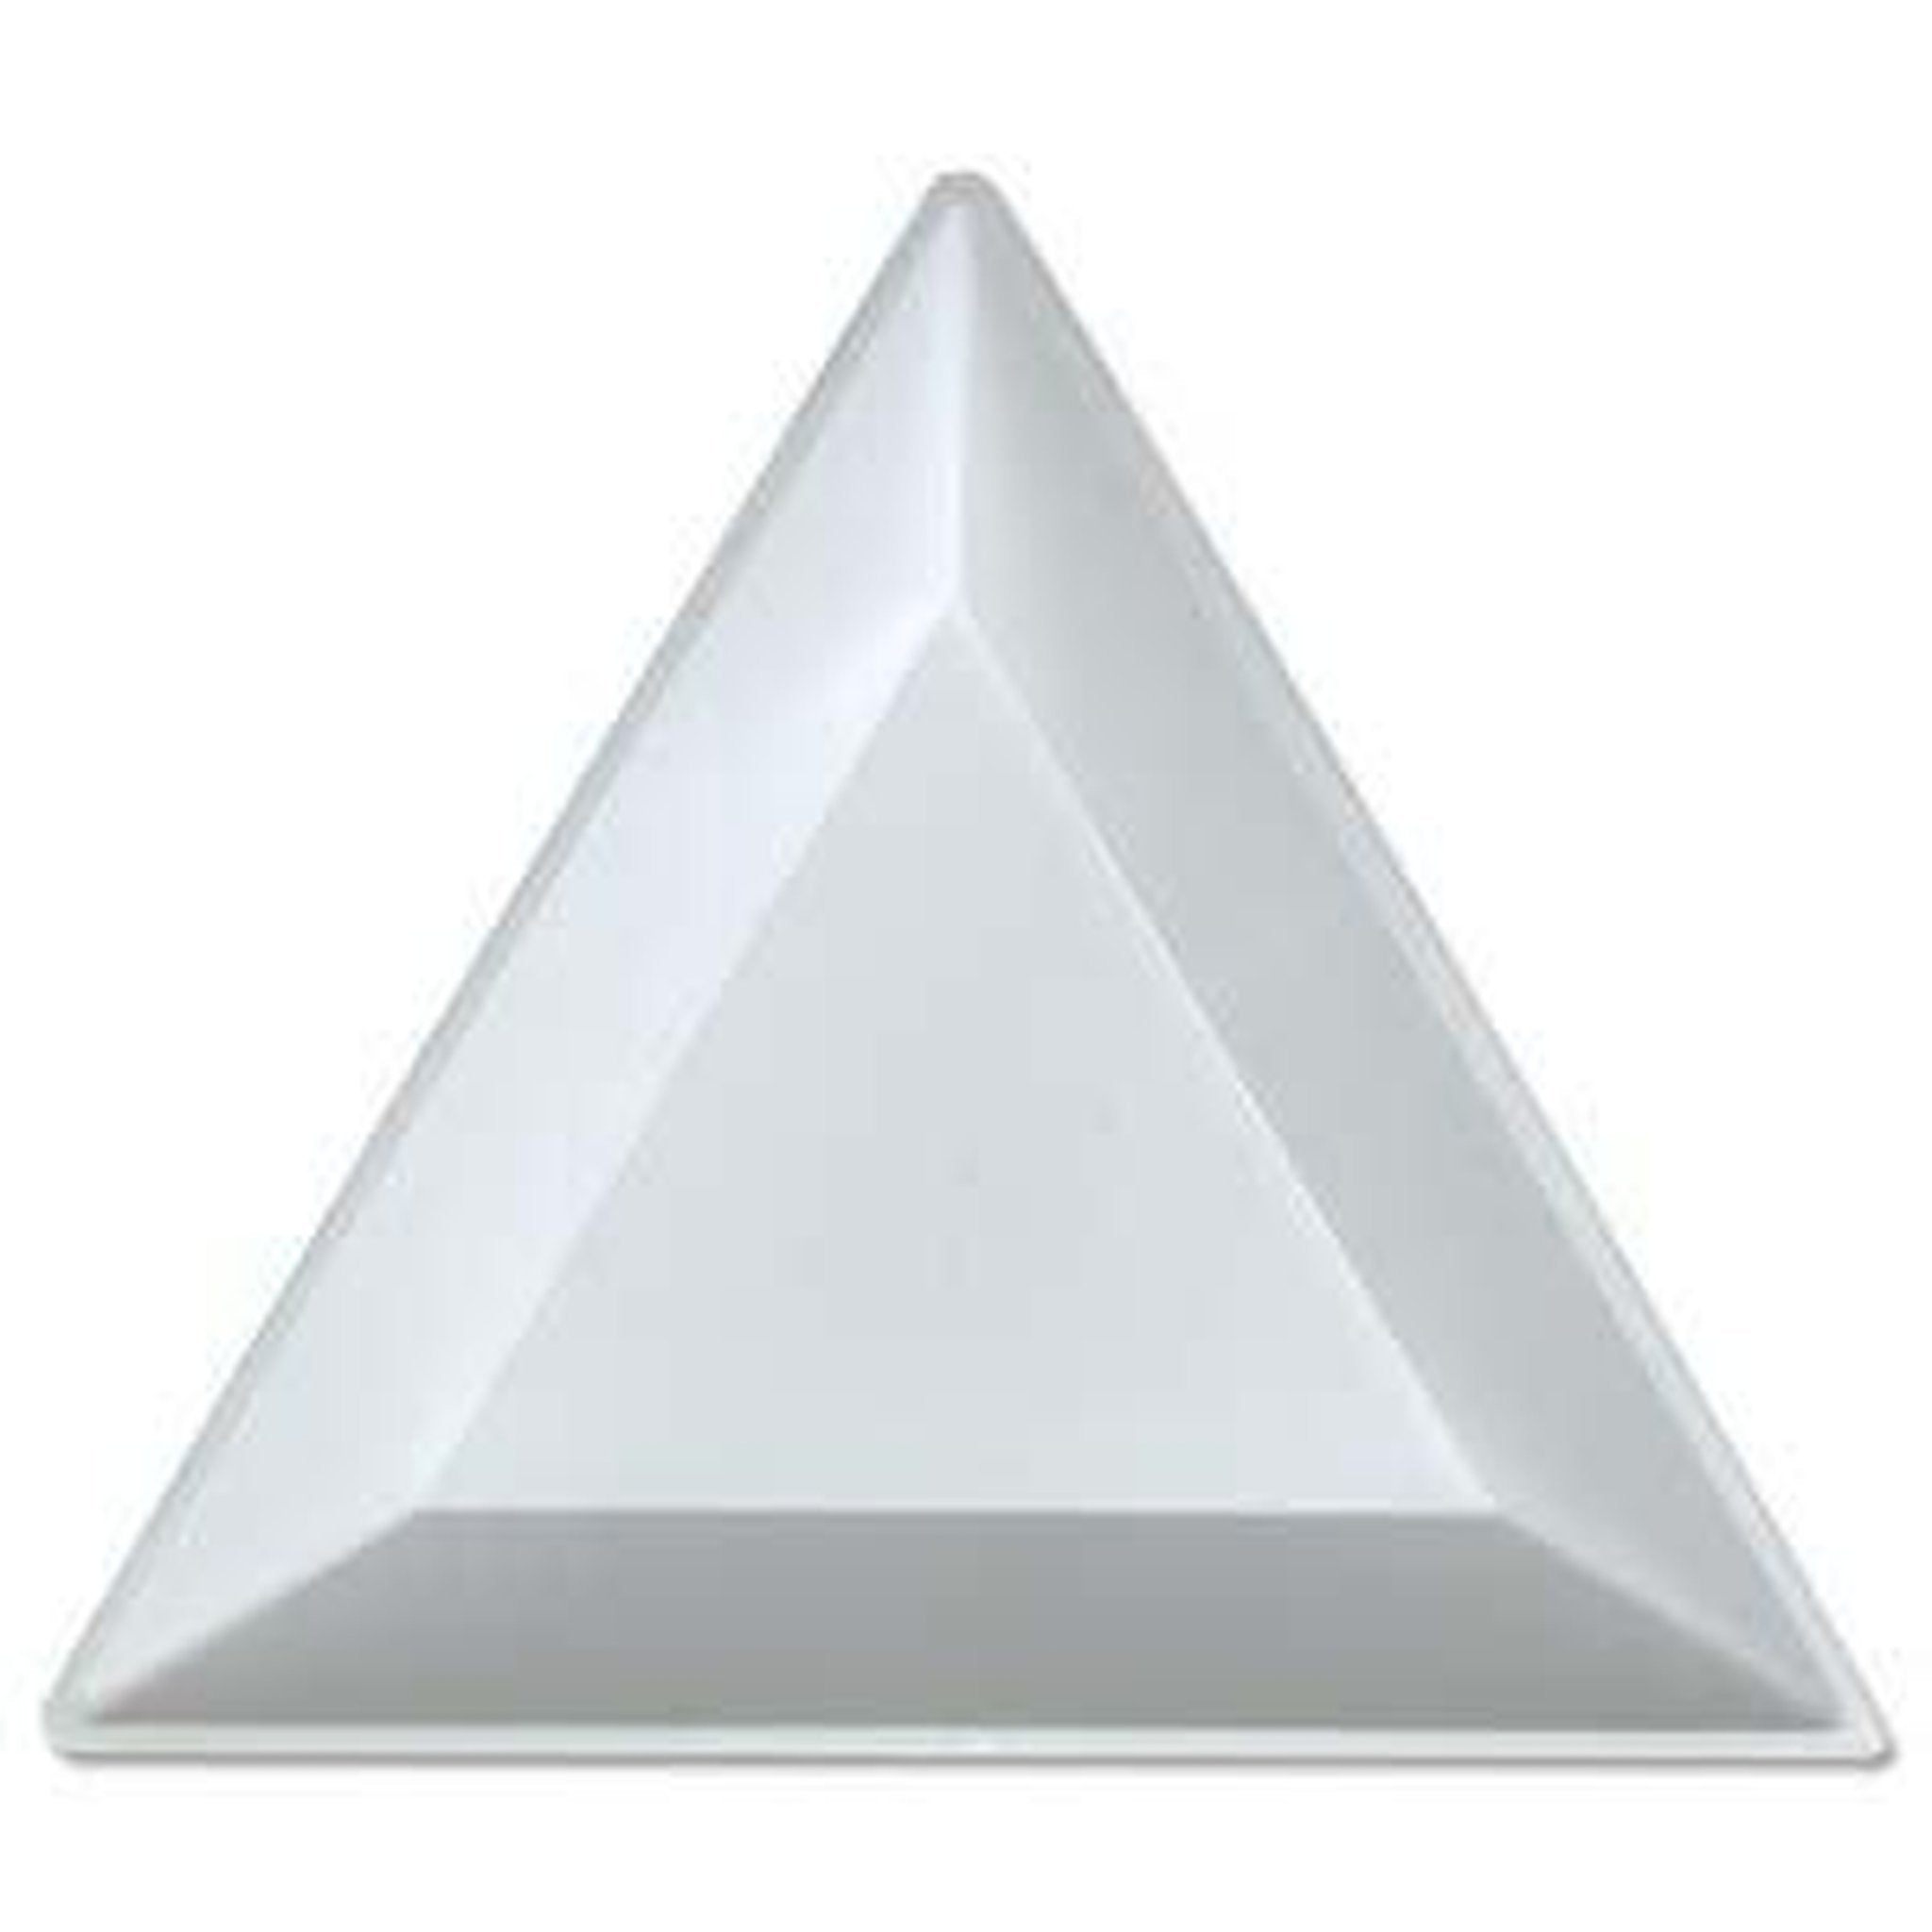 SMALL WHITE TRIANGLE TRAY-Gel Essentialz